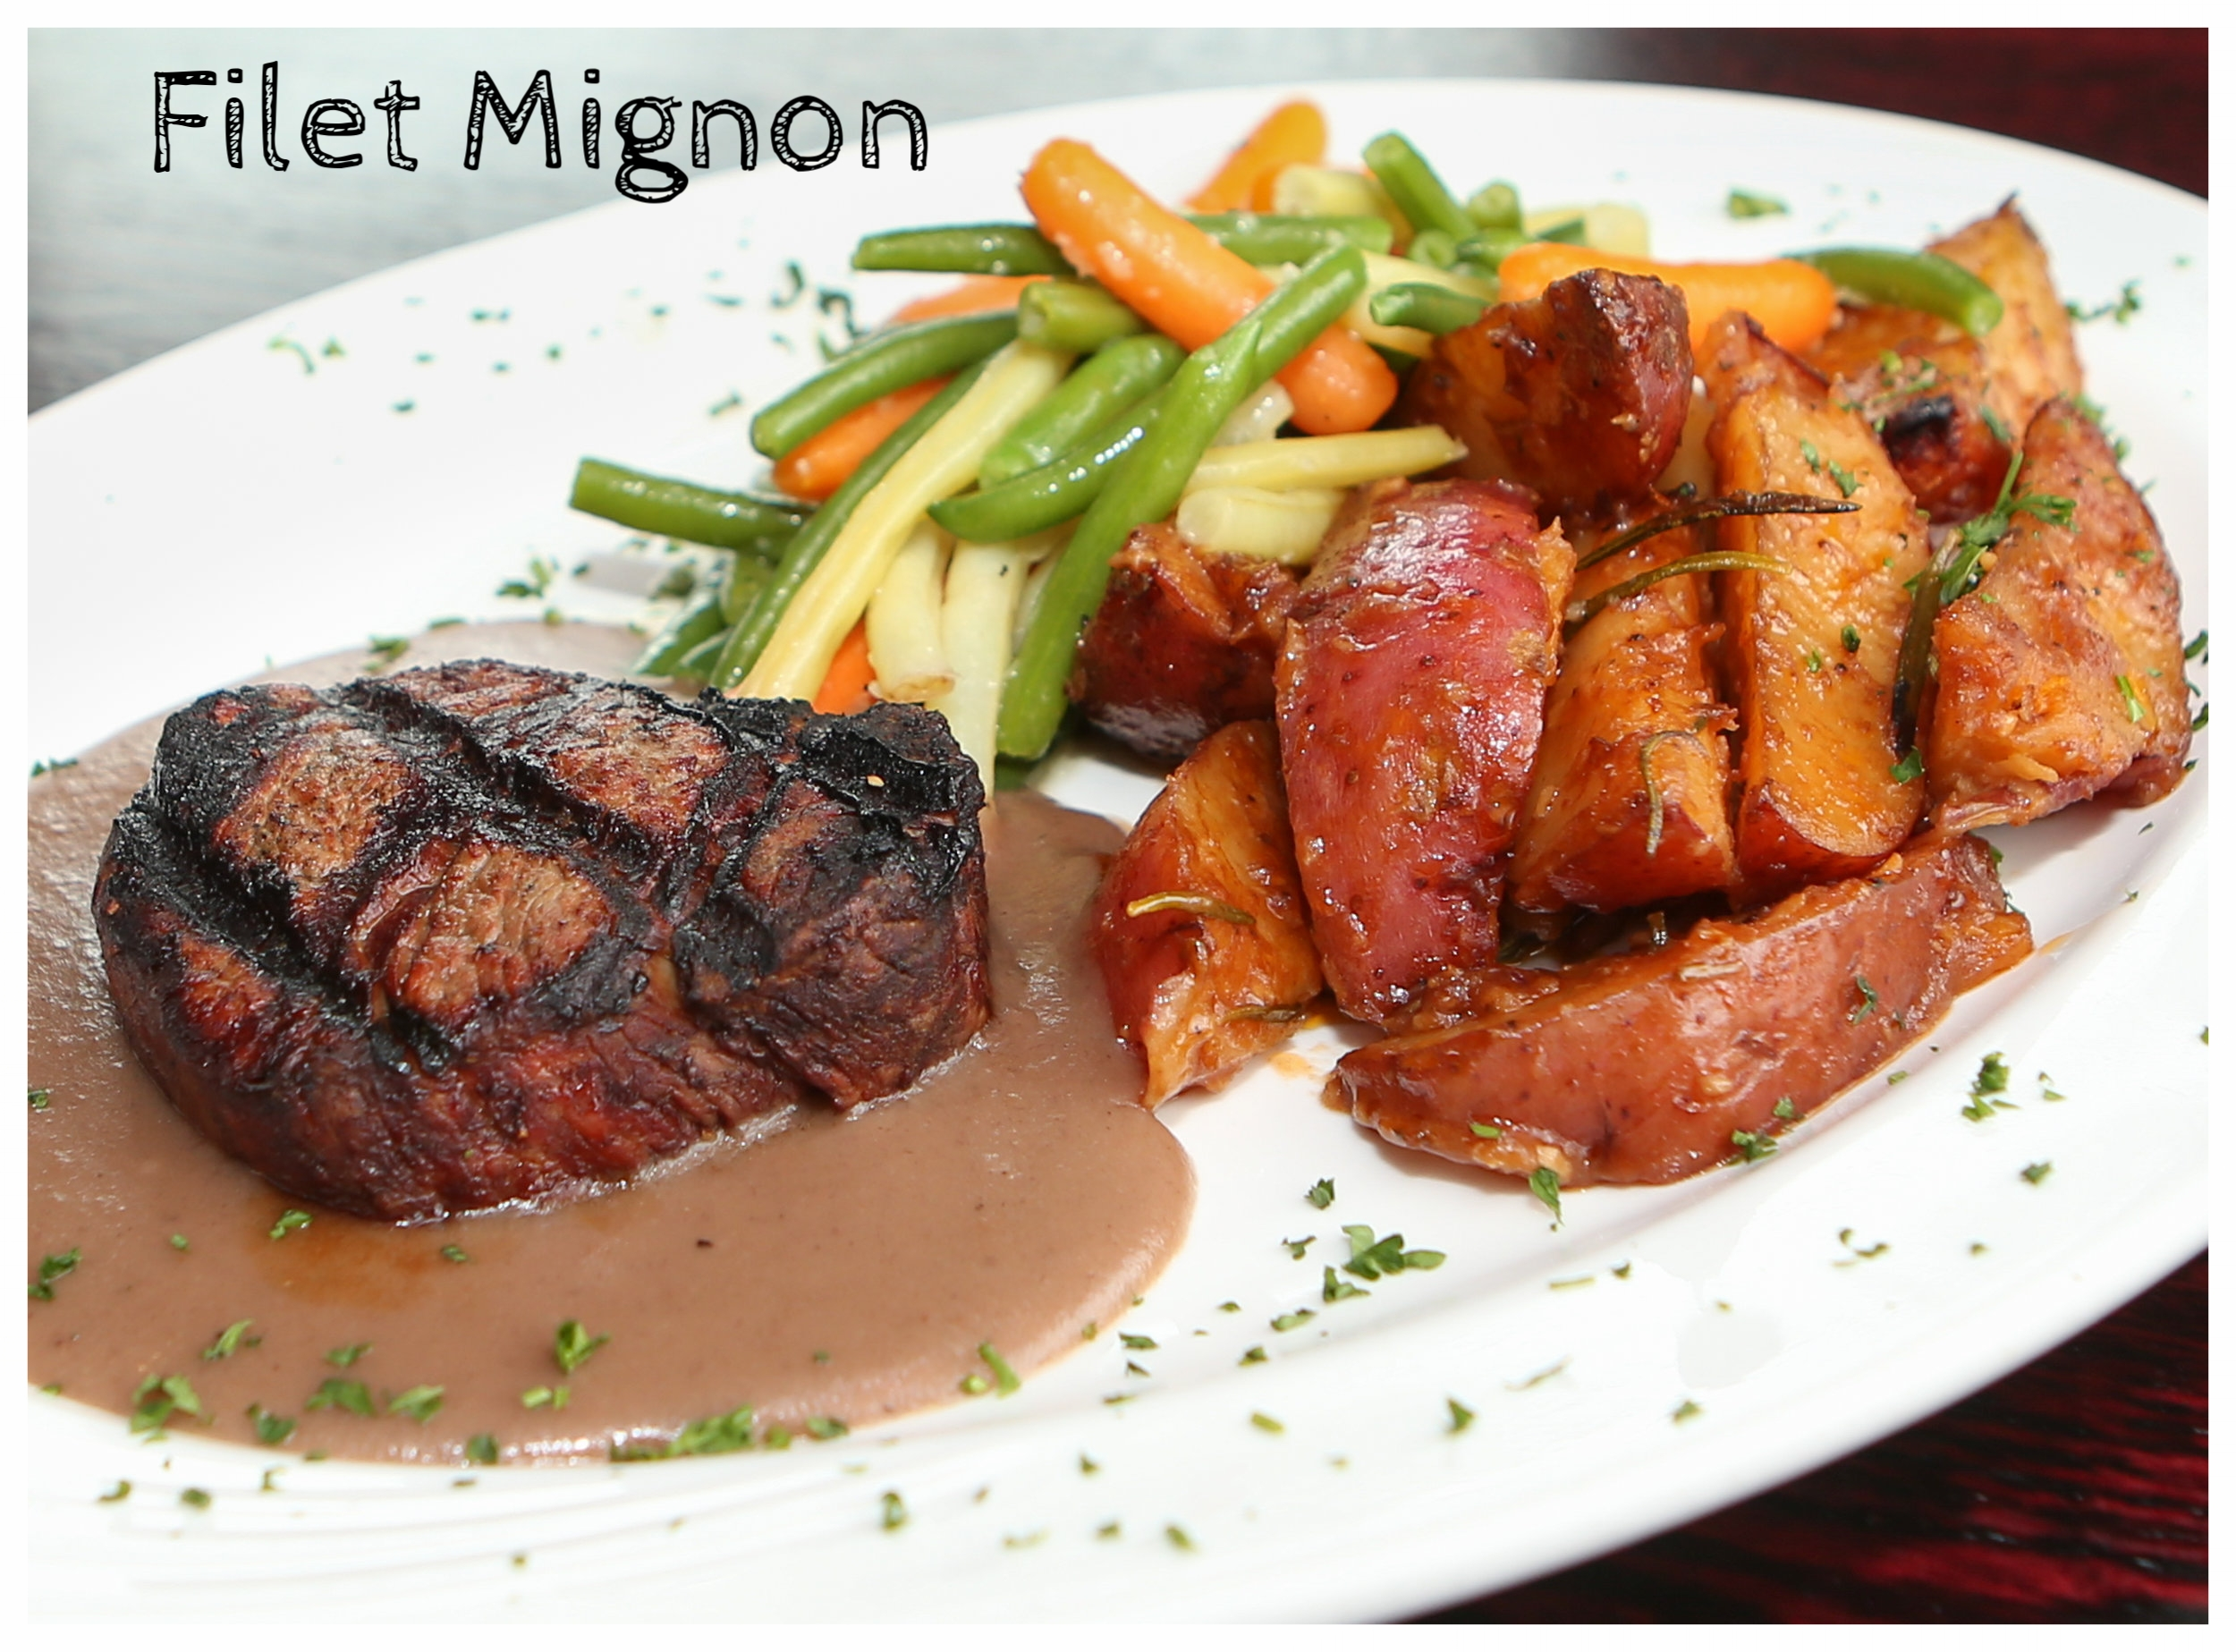 Filet Mignon (side).jpg